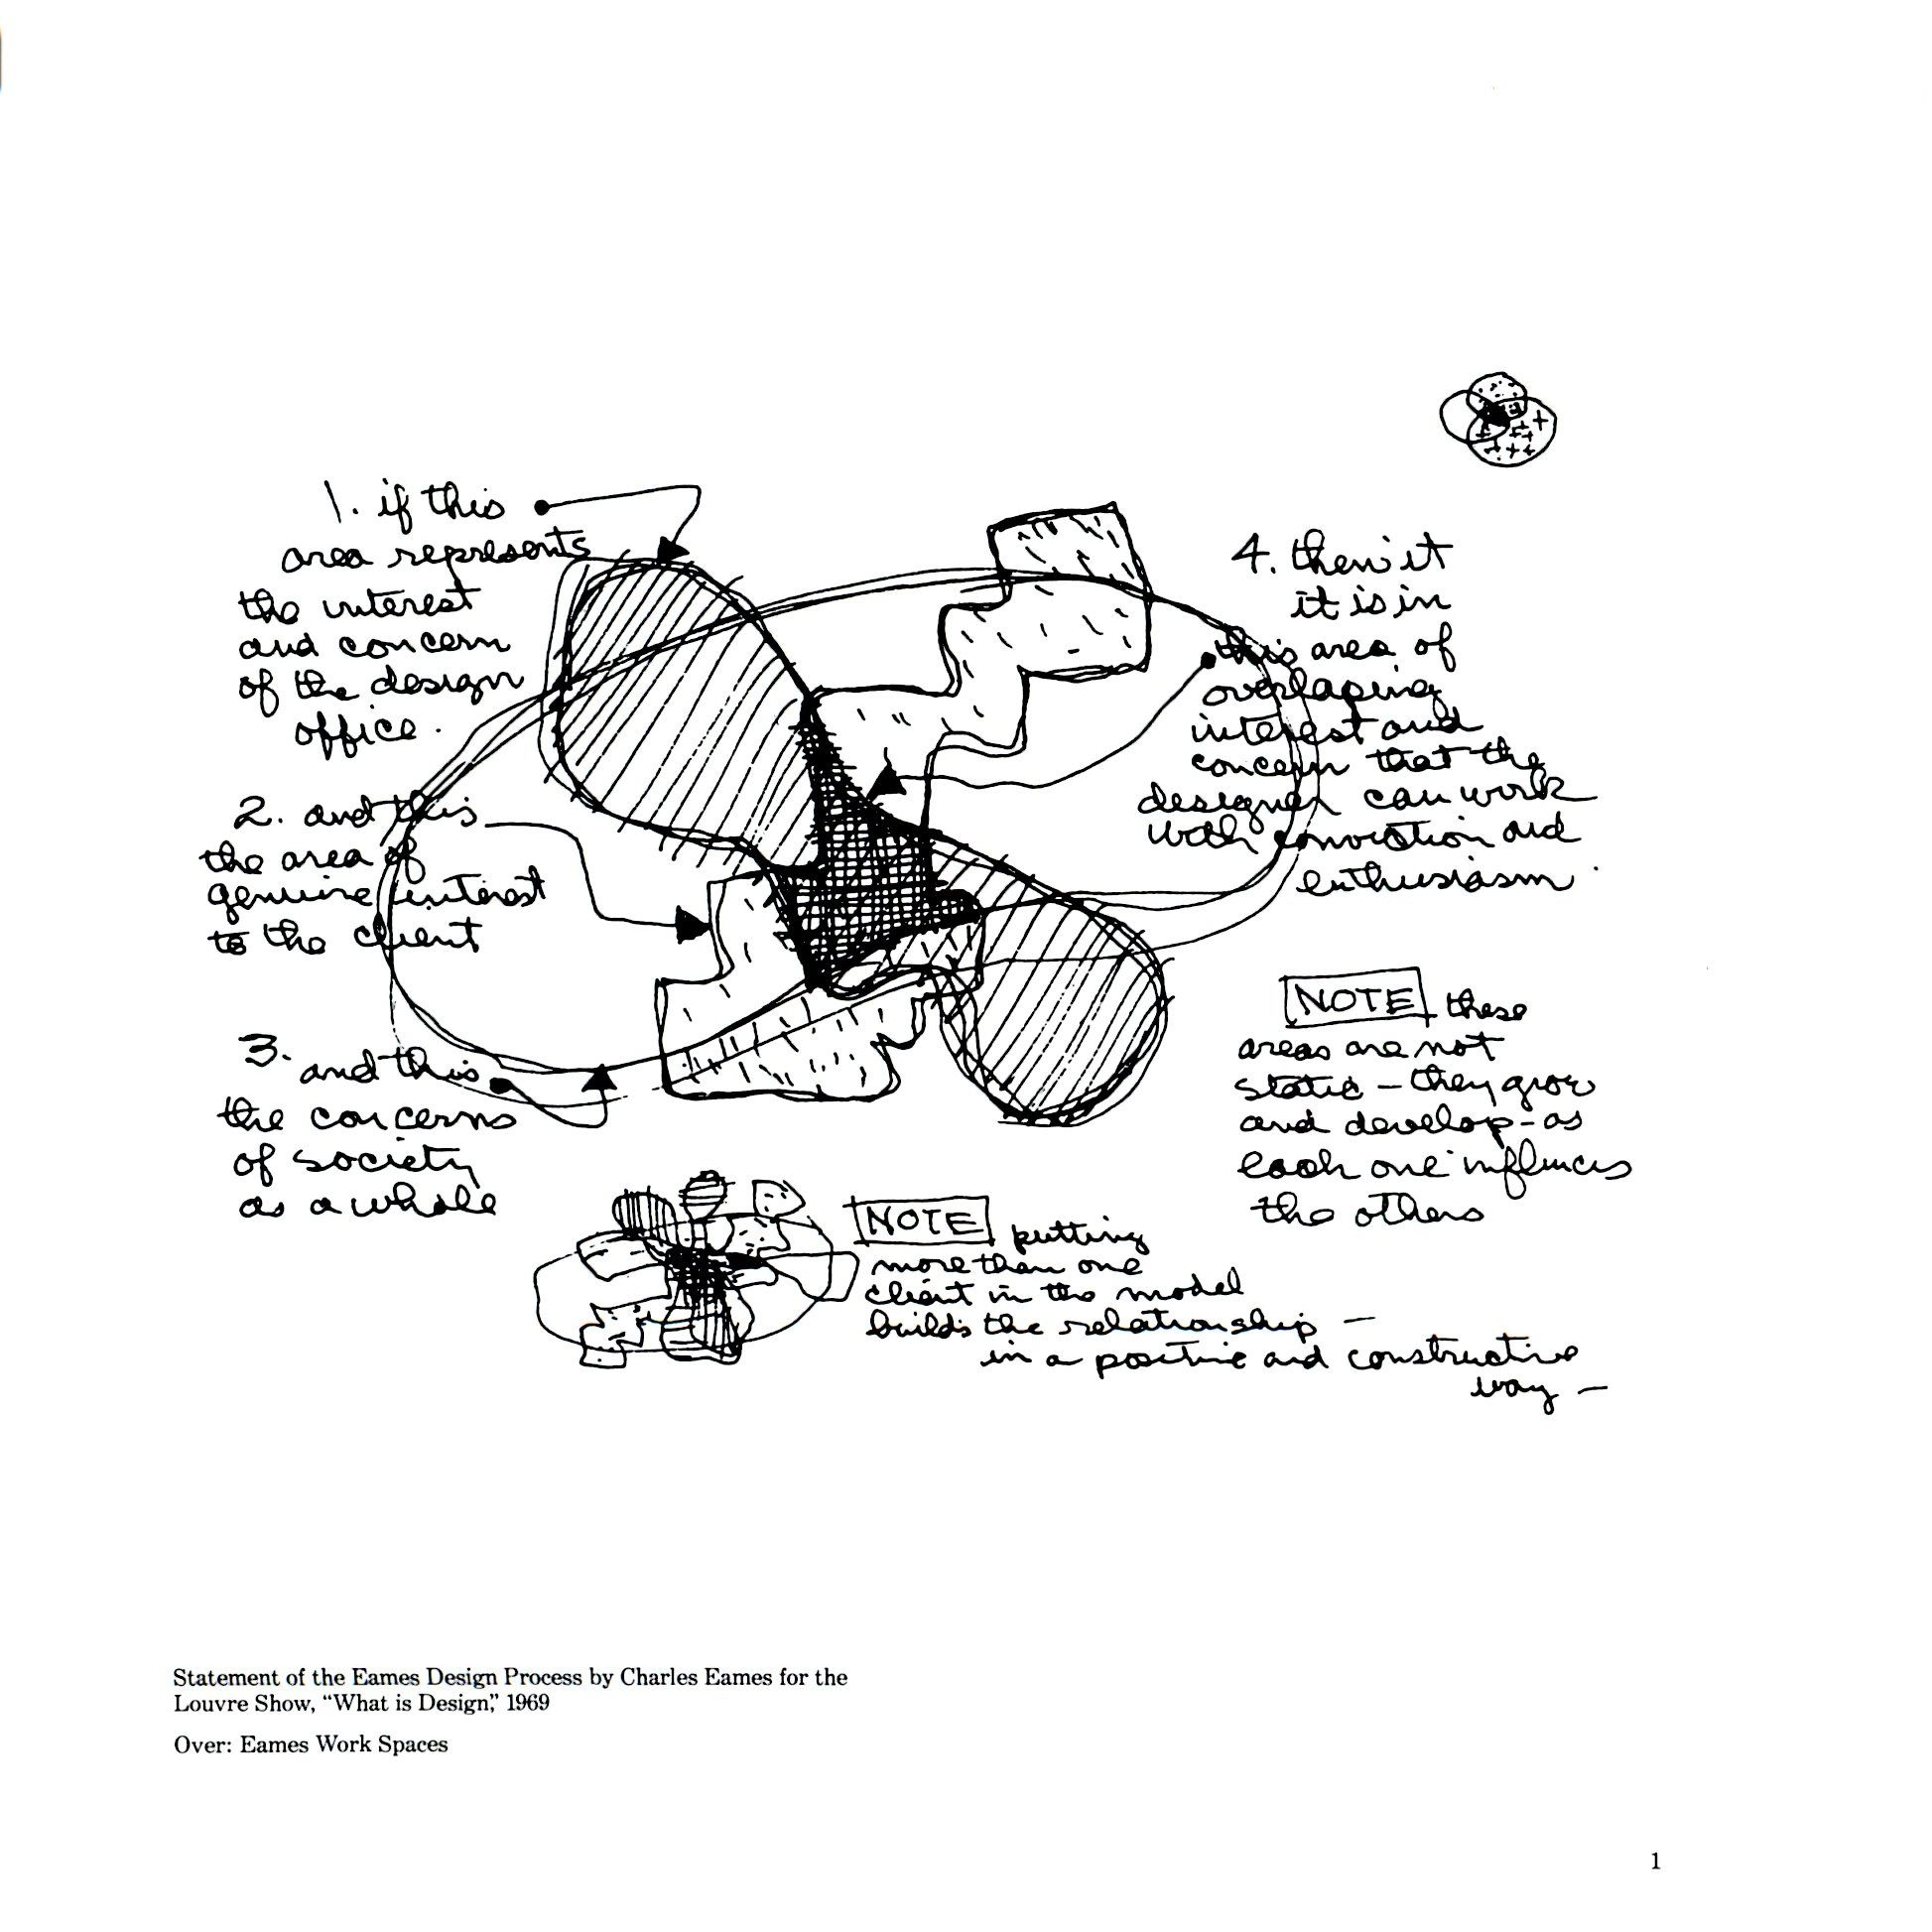 Statement of the Eames Design Process , Charles and Ray Eames